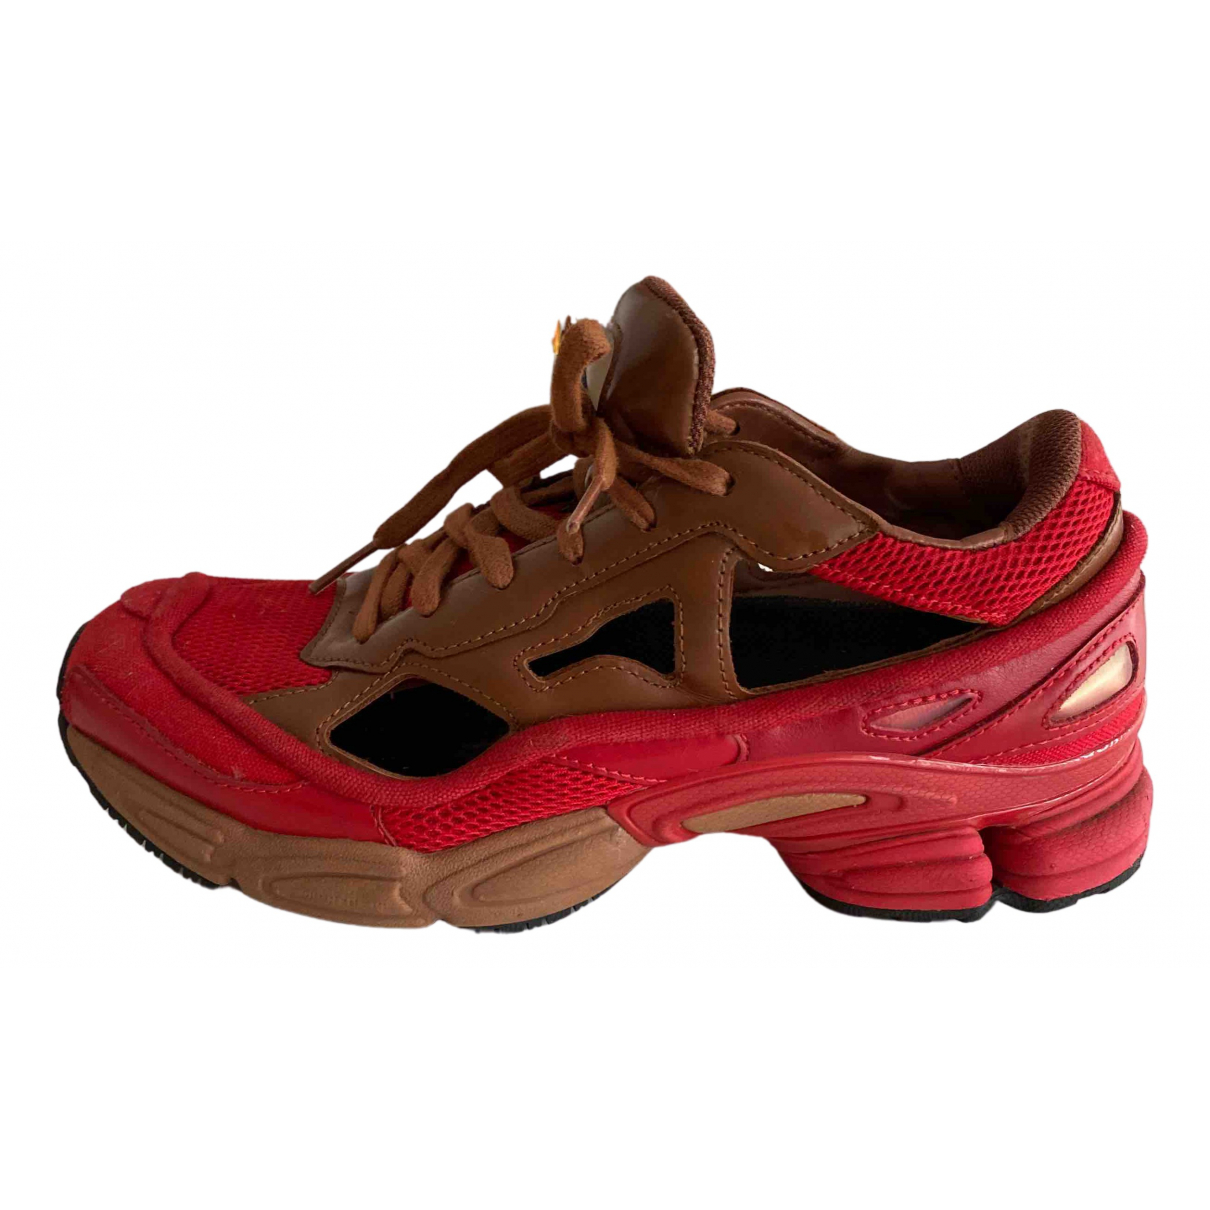 Adidas X Raf Simons - Baskets RS Ozweego pour femme en toile - rouge